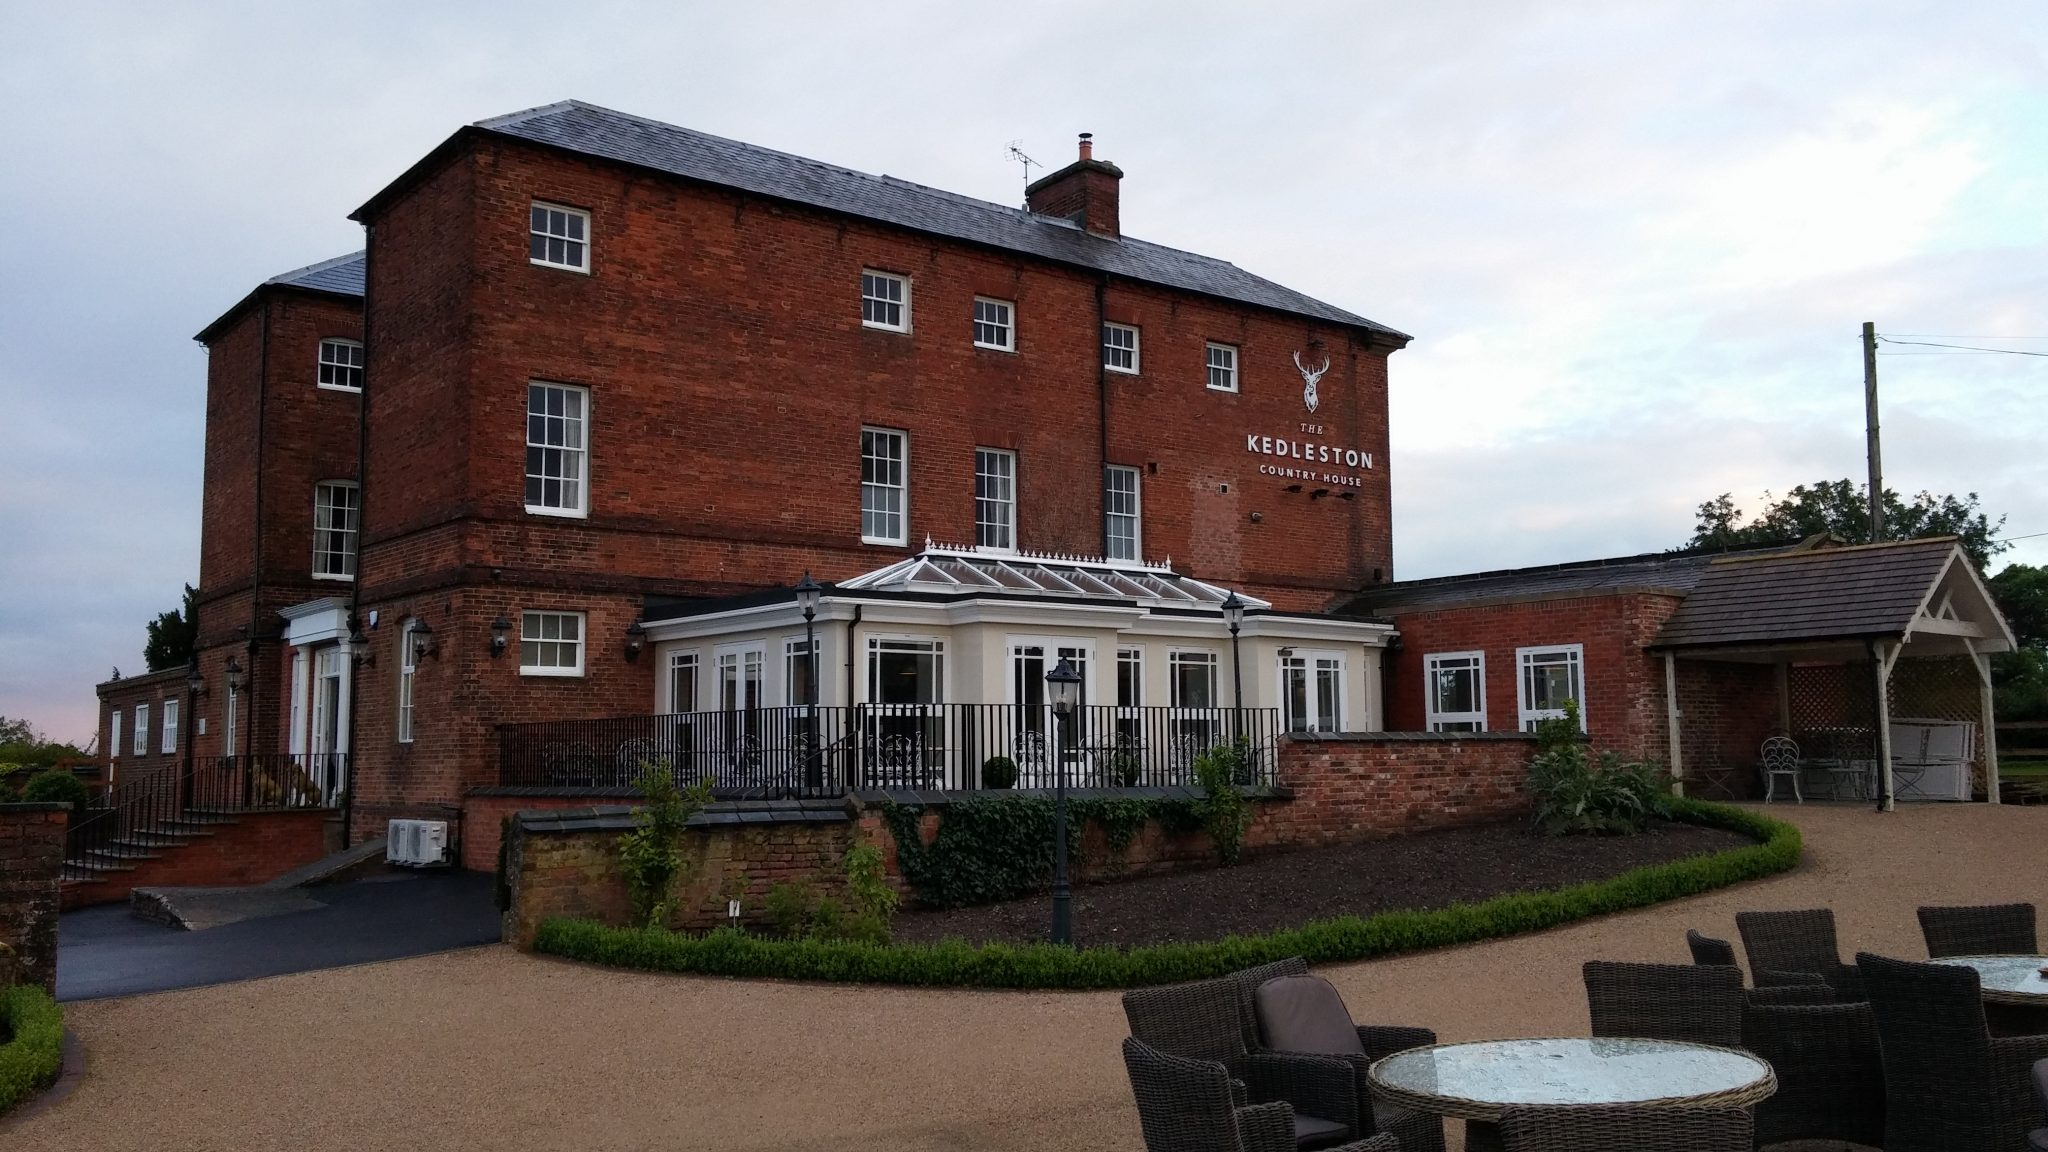 Restaurant Review: The Kedleston Country House, Derby